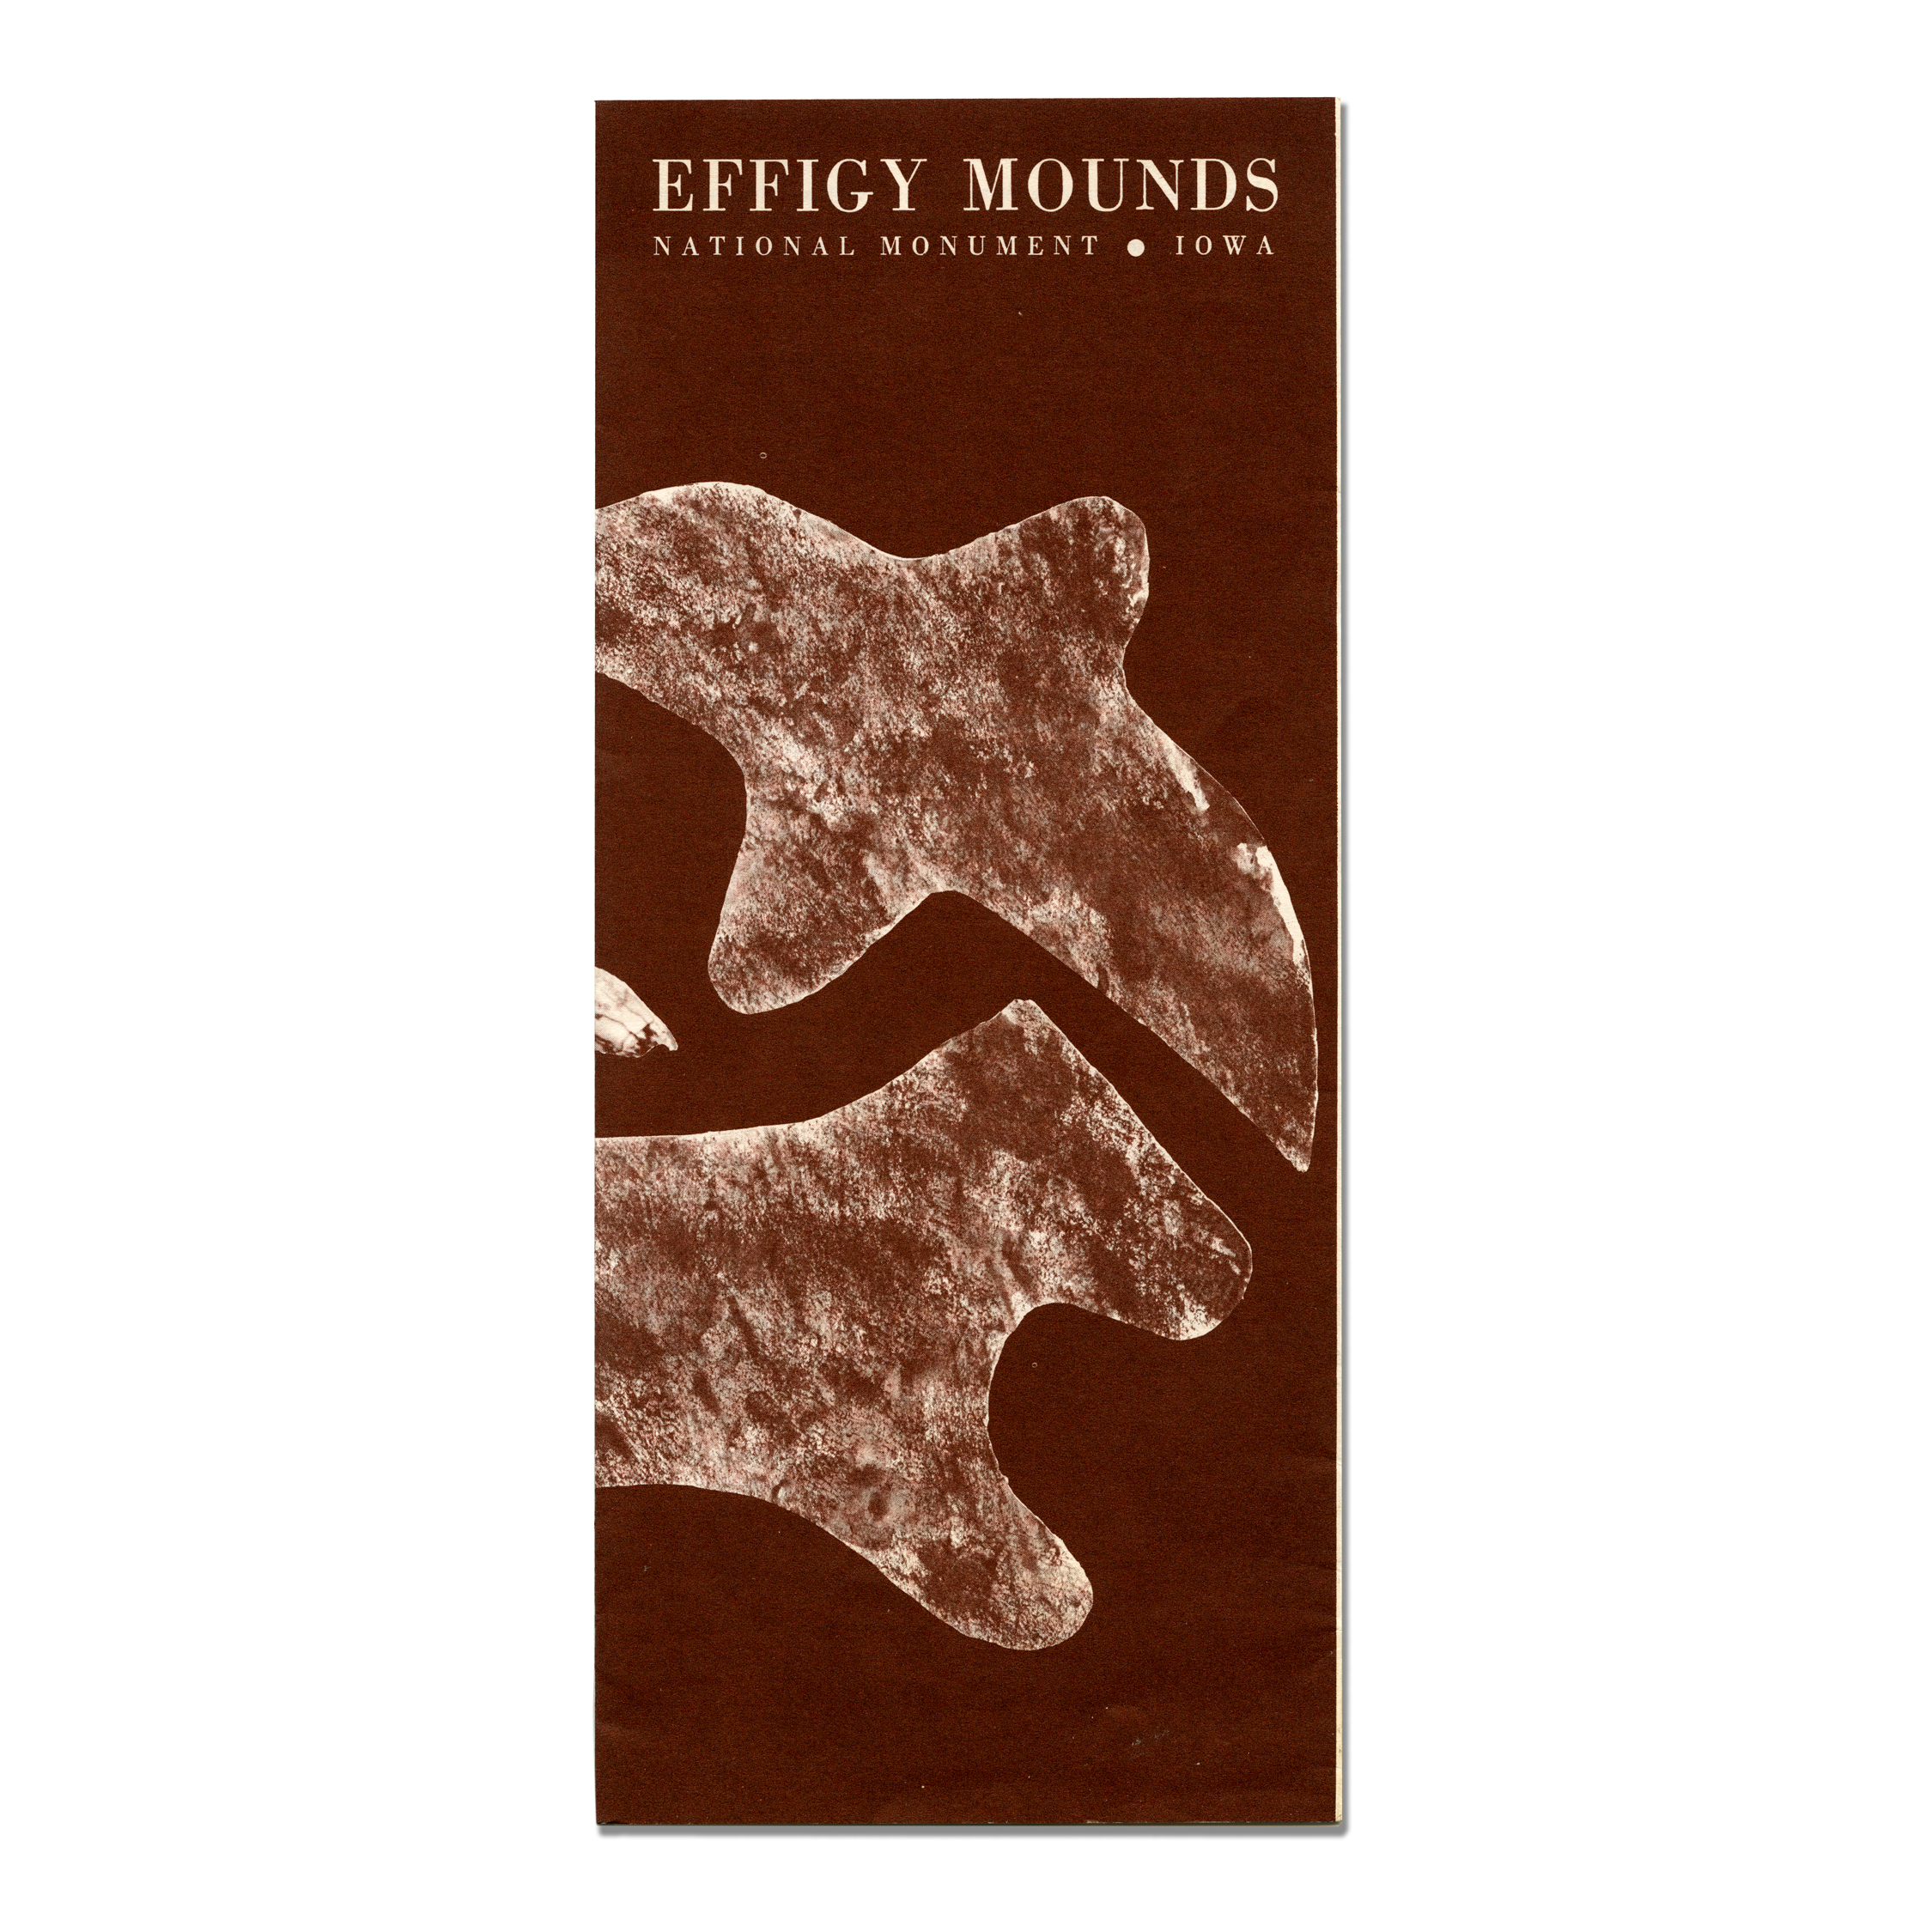 1970_effigy_mounds_national_monument_brochure.jpg